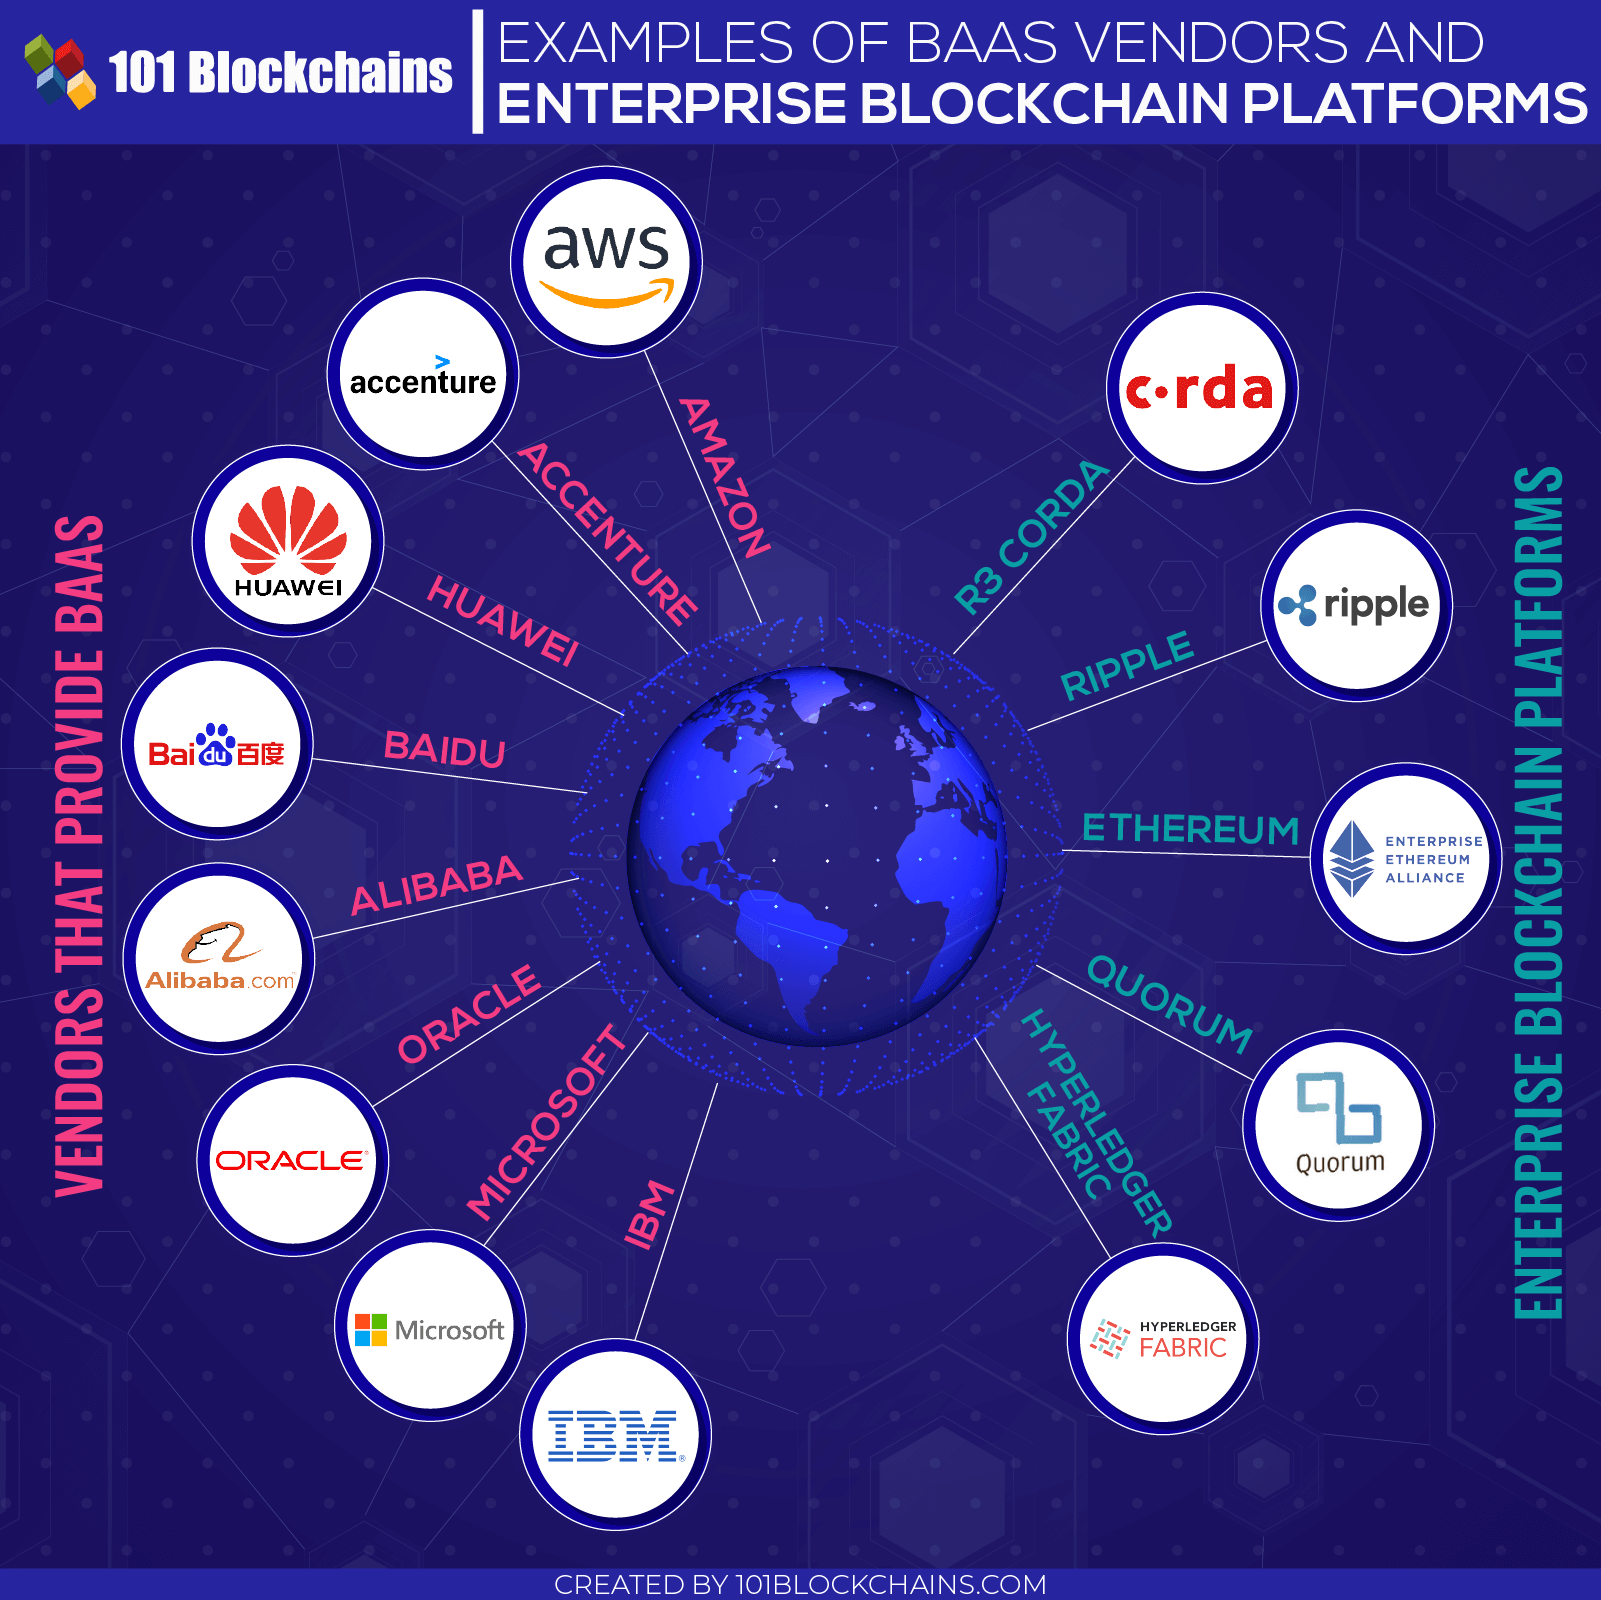 Example of baas vendors and enterprise blockchain platforms